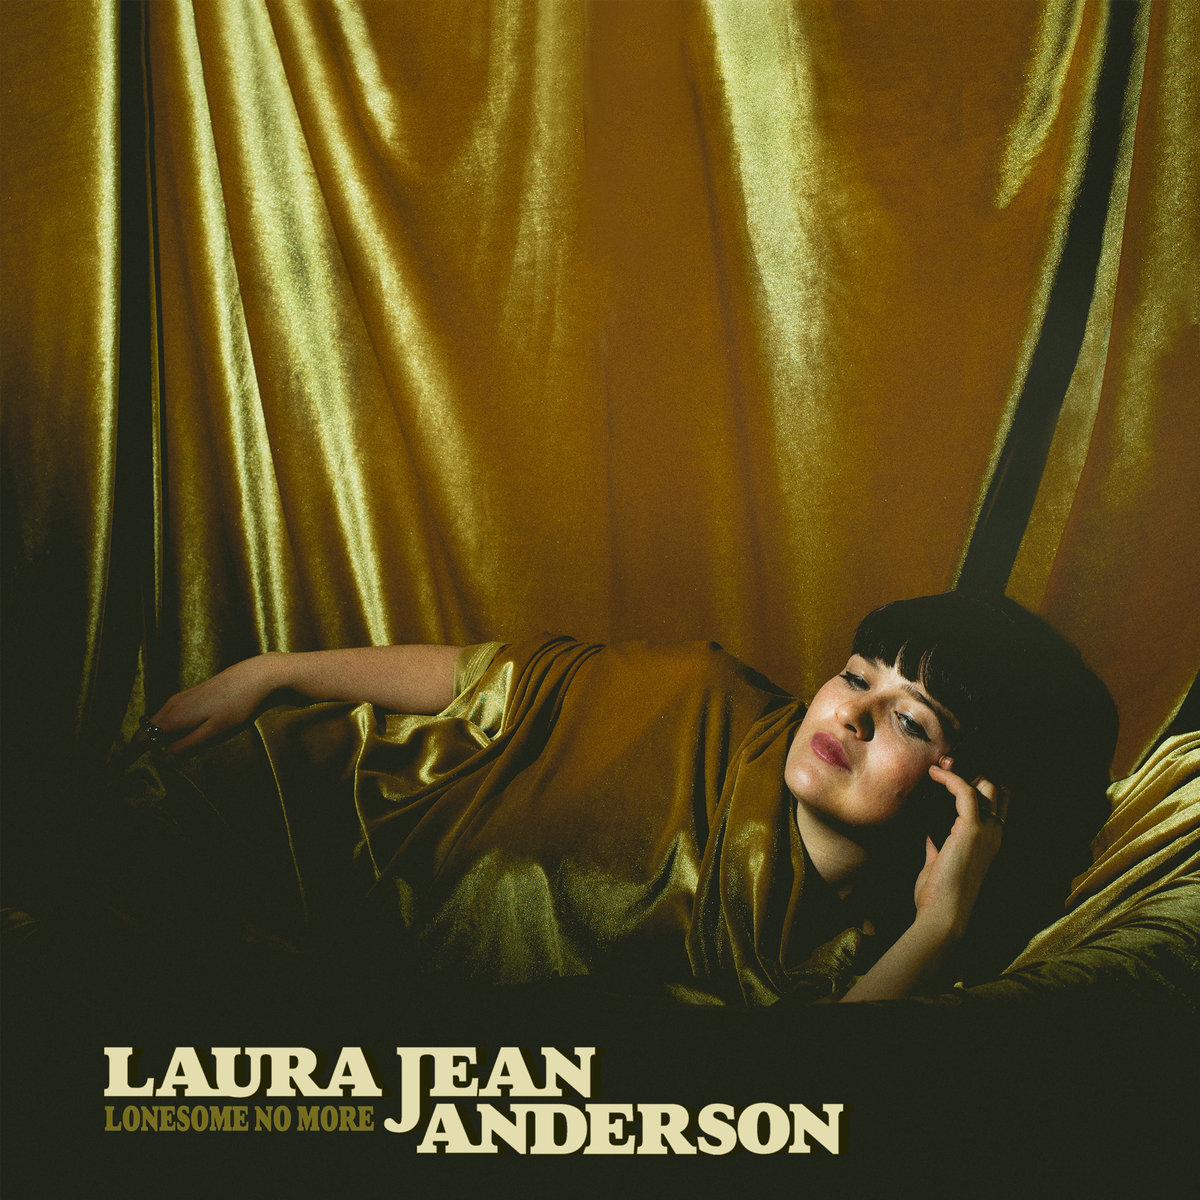 laura jean anderson lonesome no more